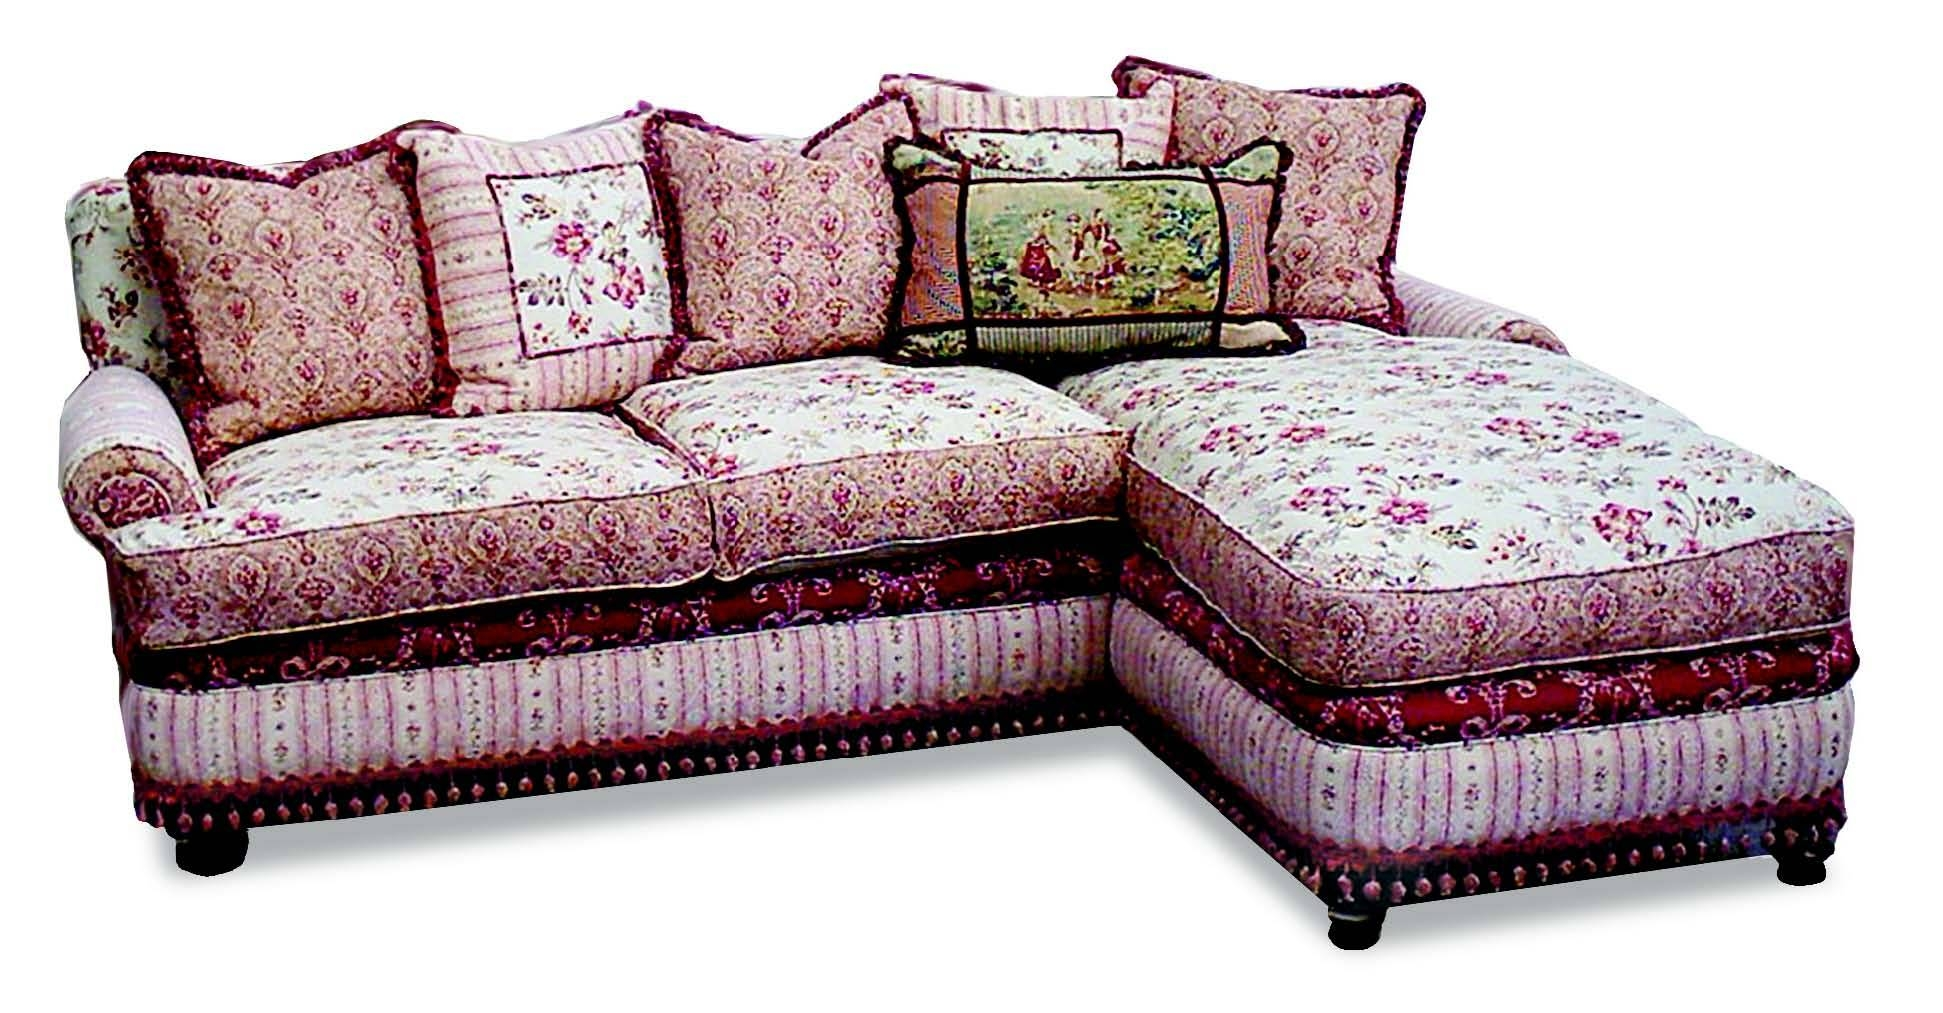 Couch Shabby Chic The Best Shabby Chic Sofas Cheap